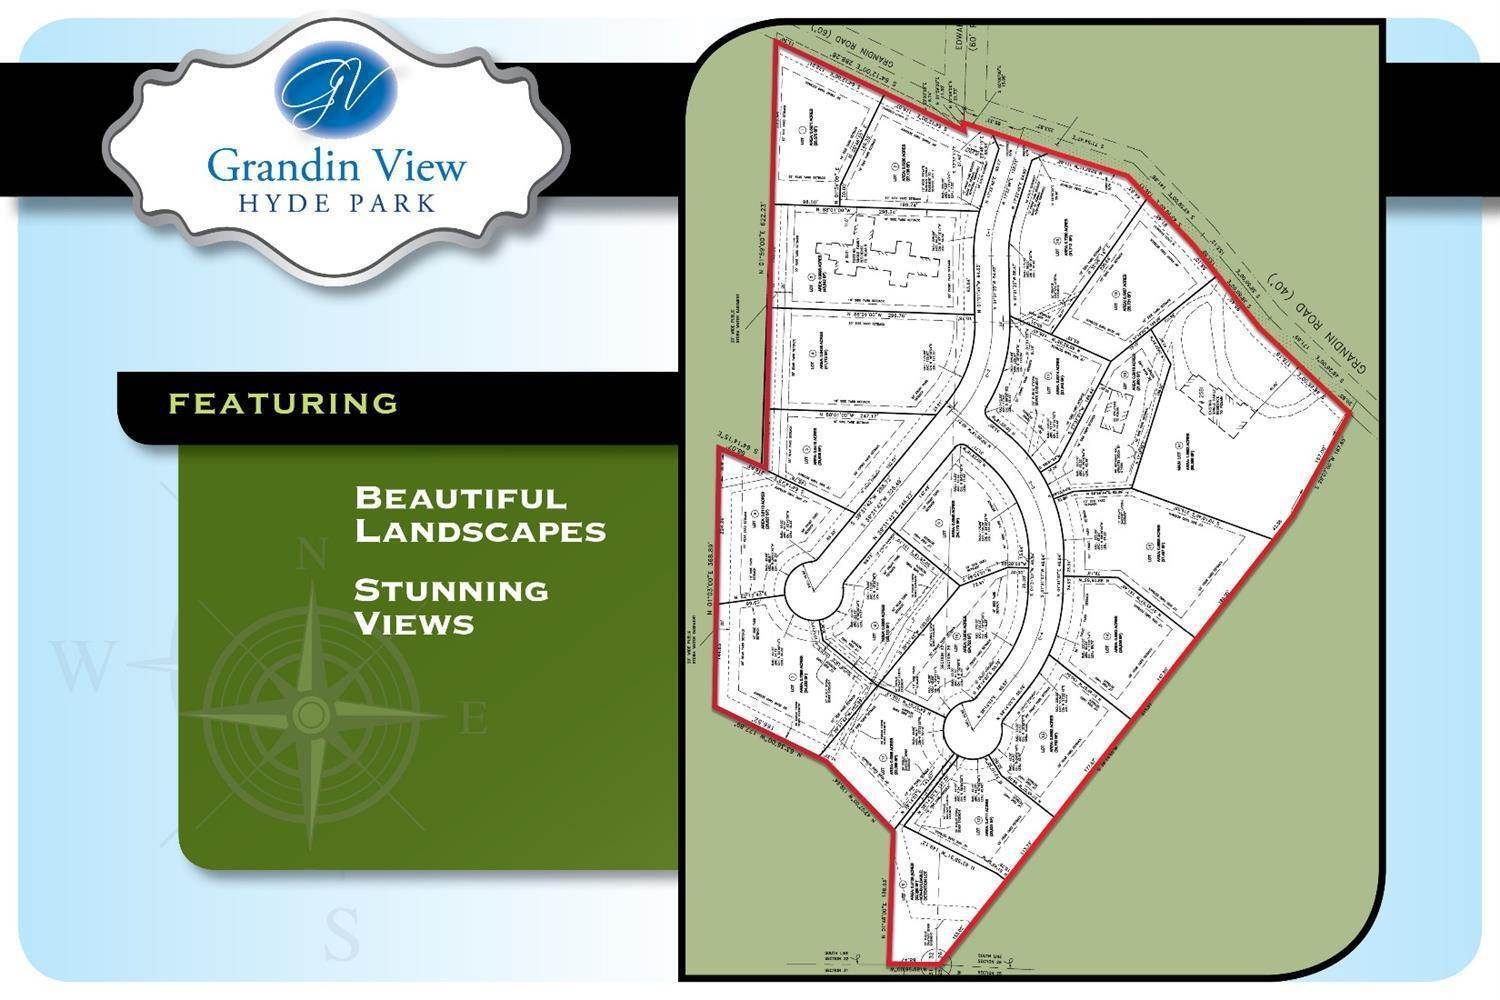 Land for Sale at 11 Grandin View Lane Cincinnati, Ohio 45208 United States